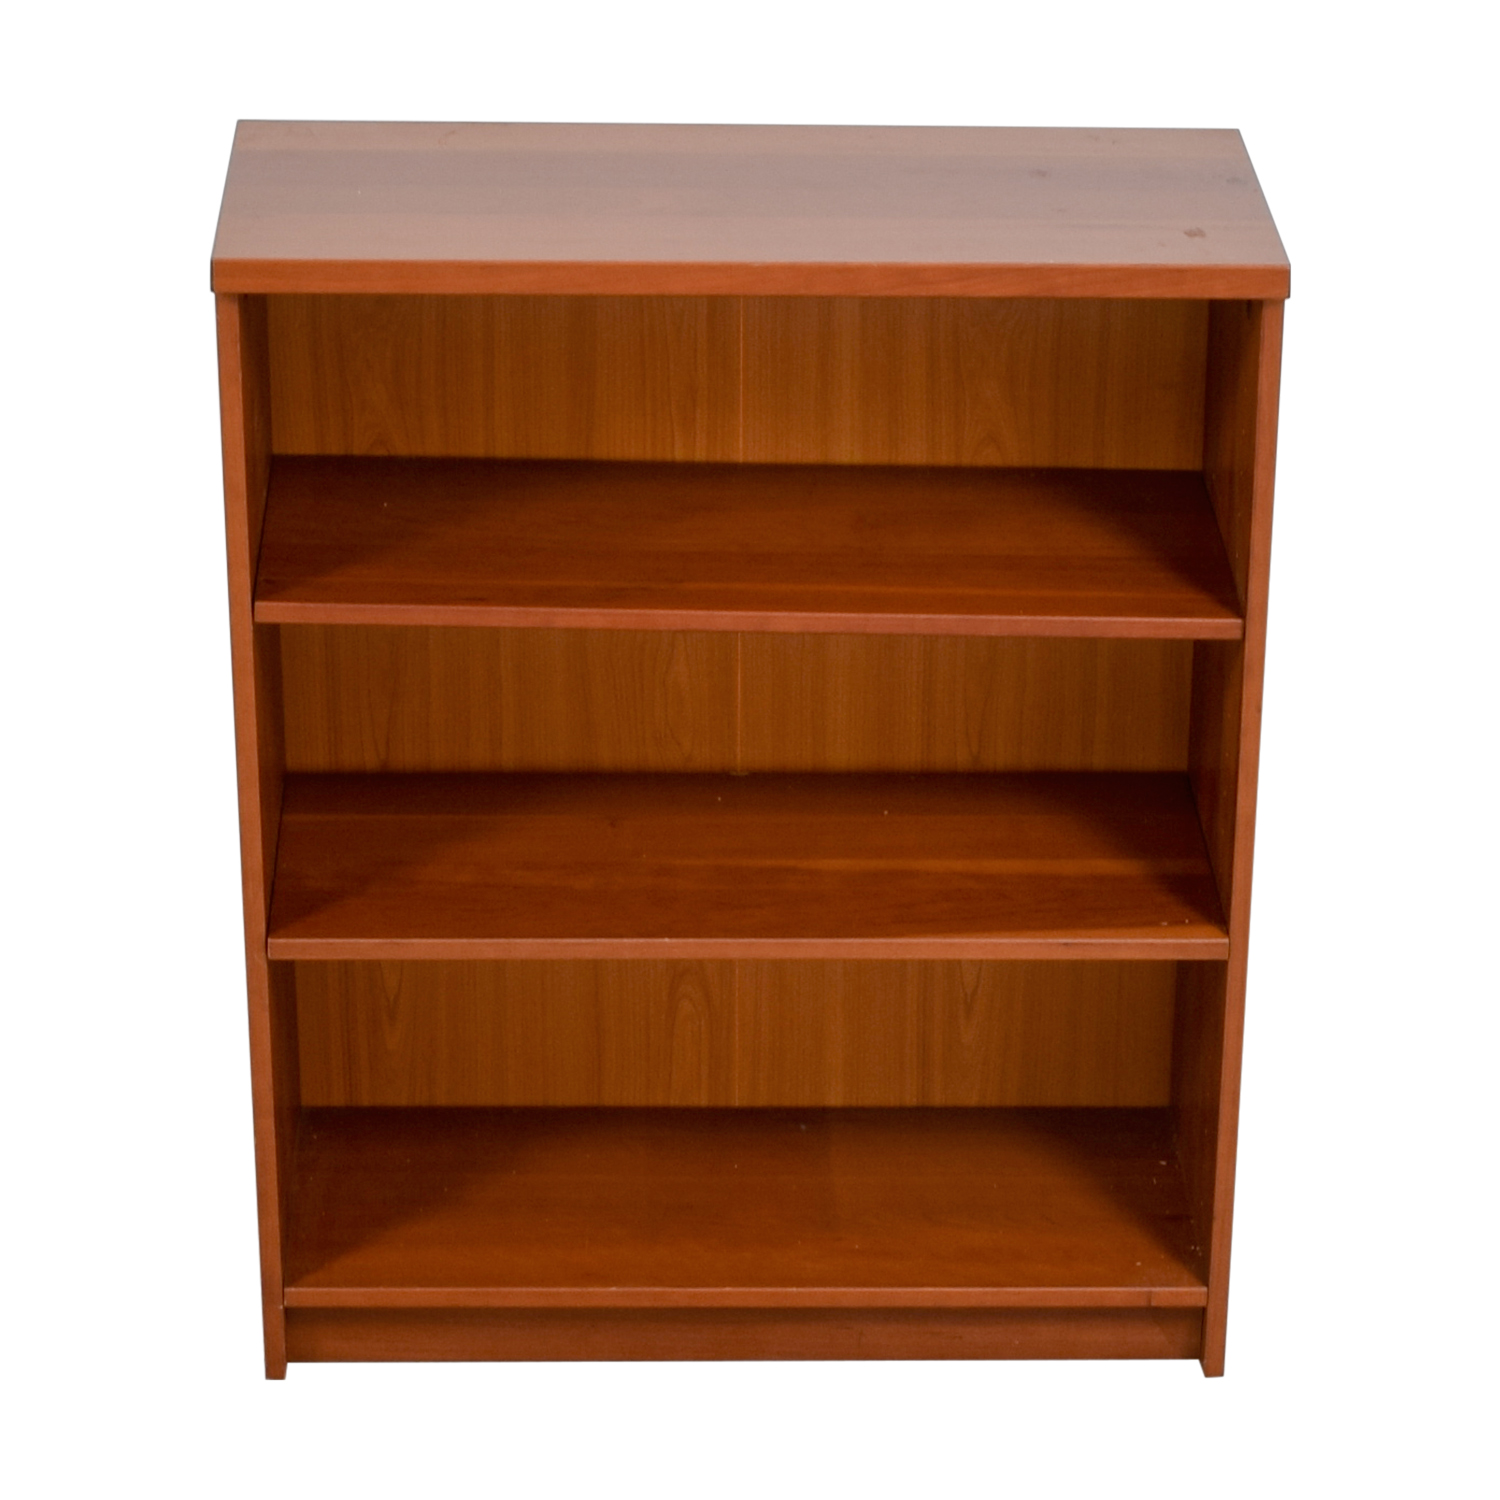 shop Three Shelf Bookshelf  Bookcases & Shelving